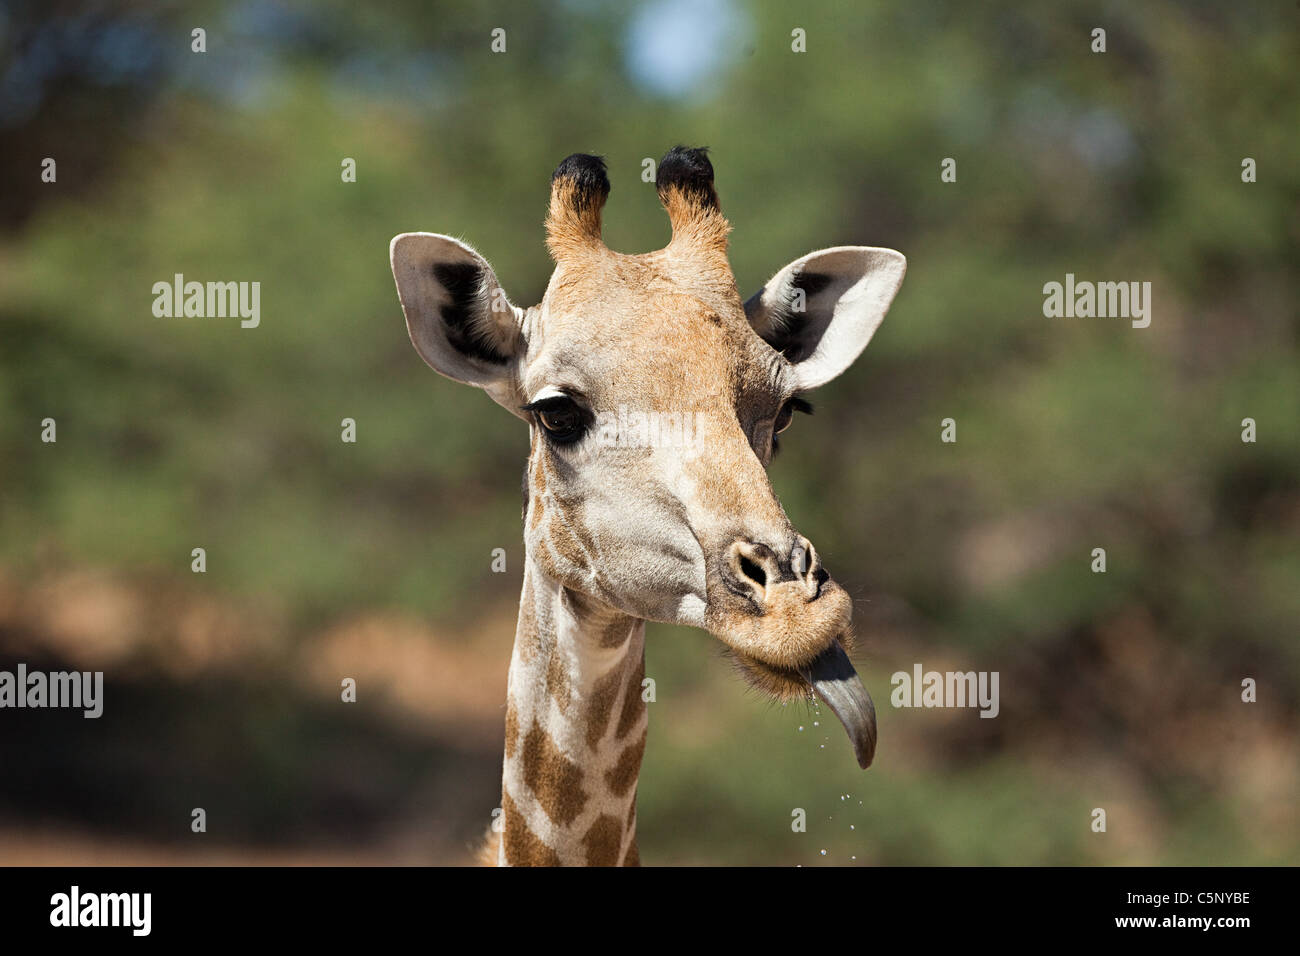 Giraffe sticking out tongue - Stock Image